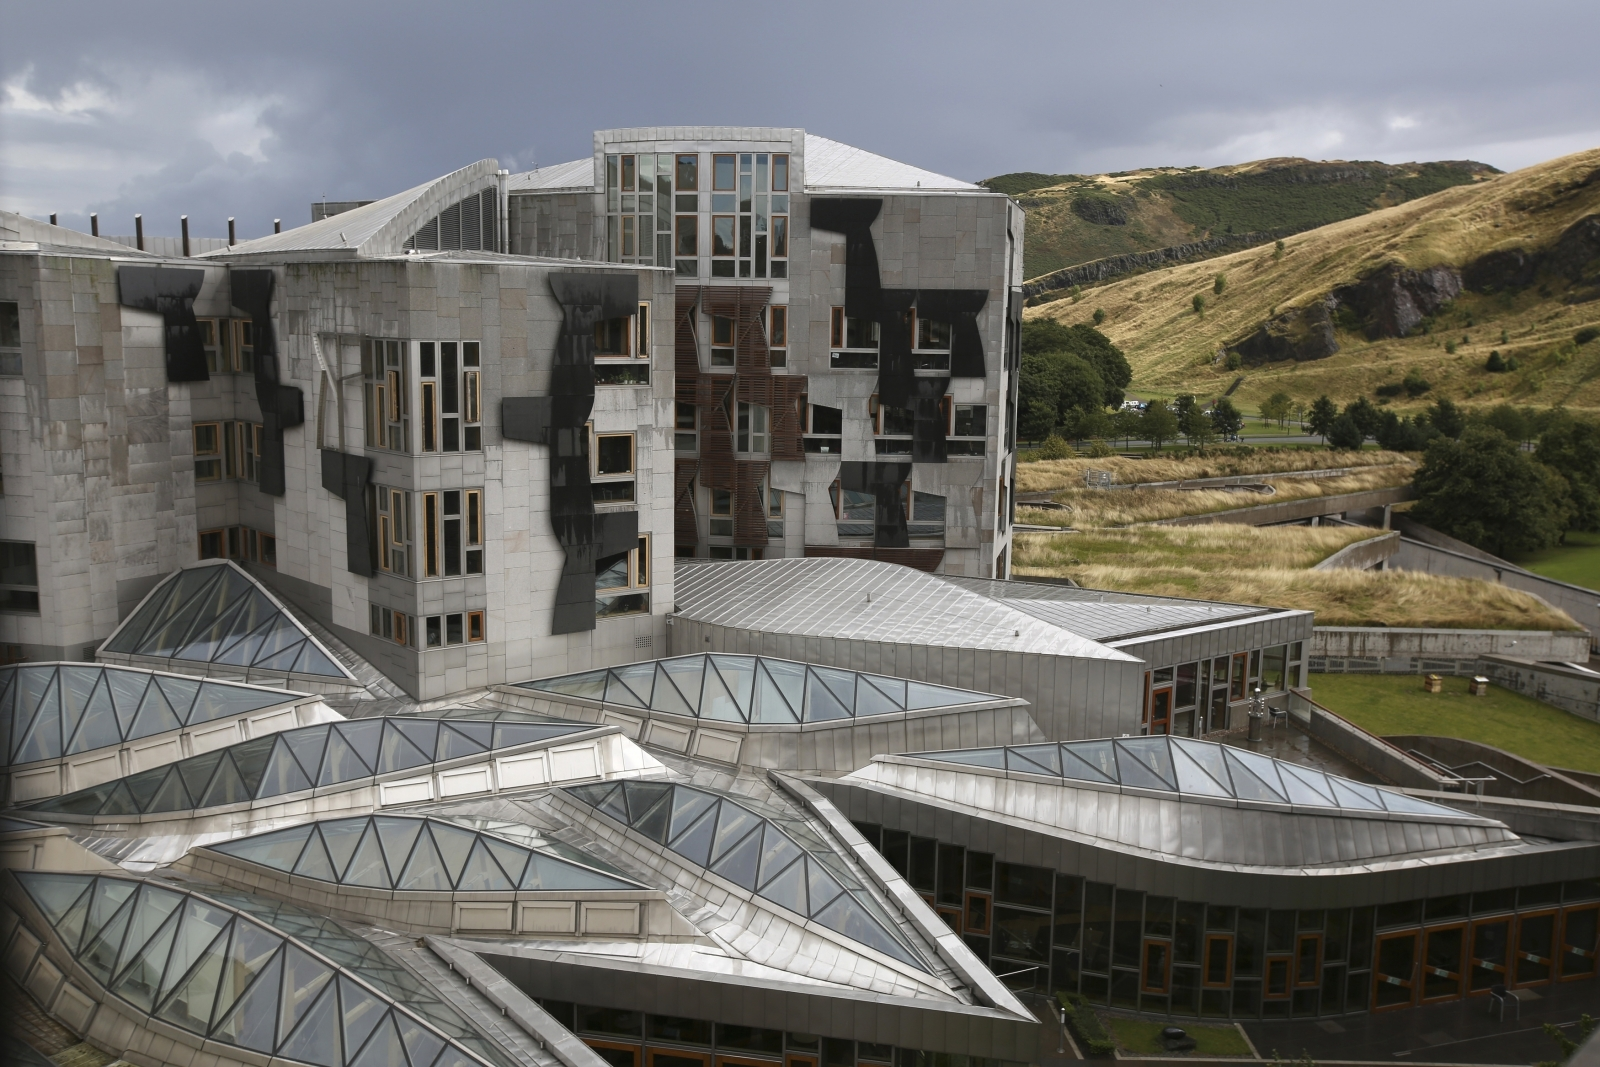 Police at Scottish parliament after suspect package found